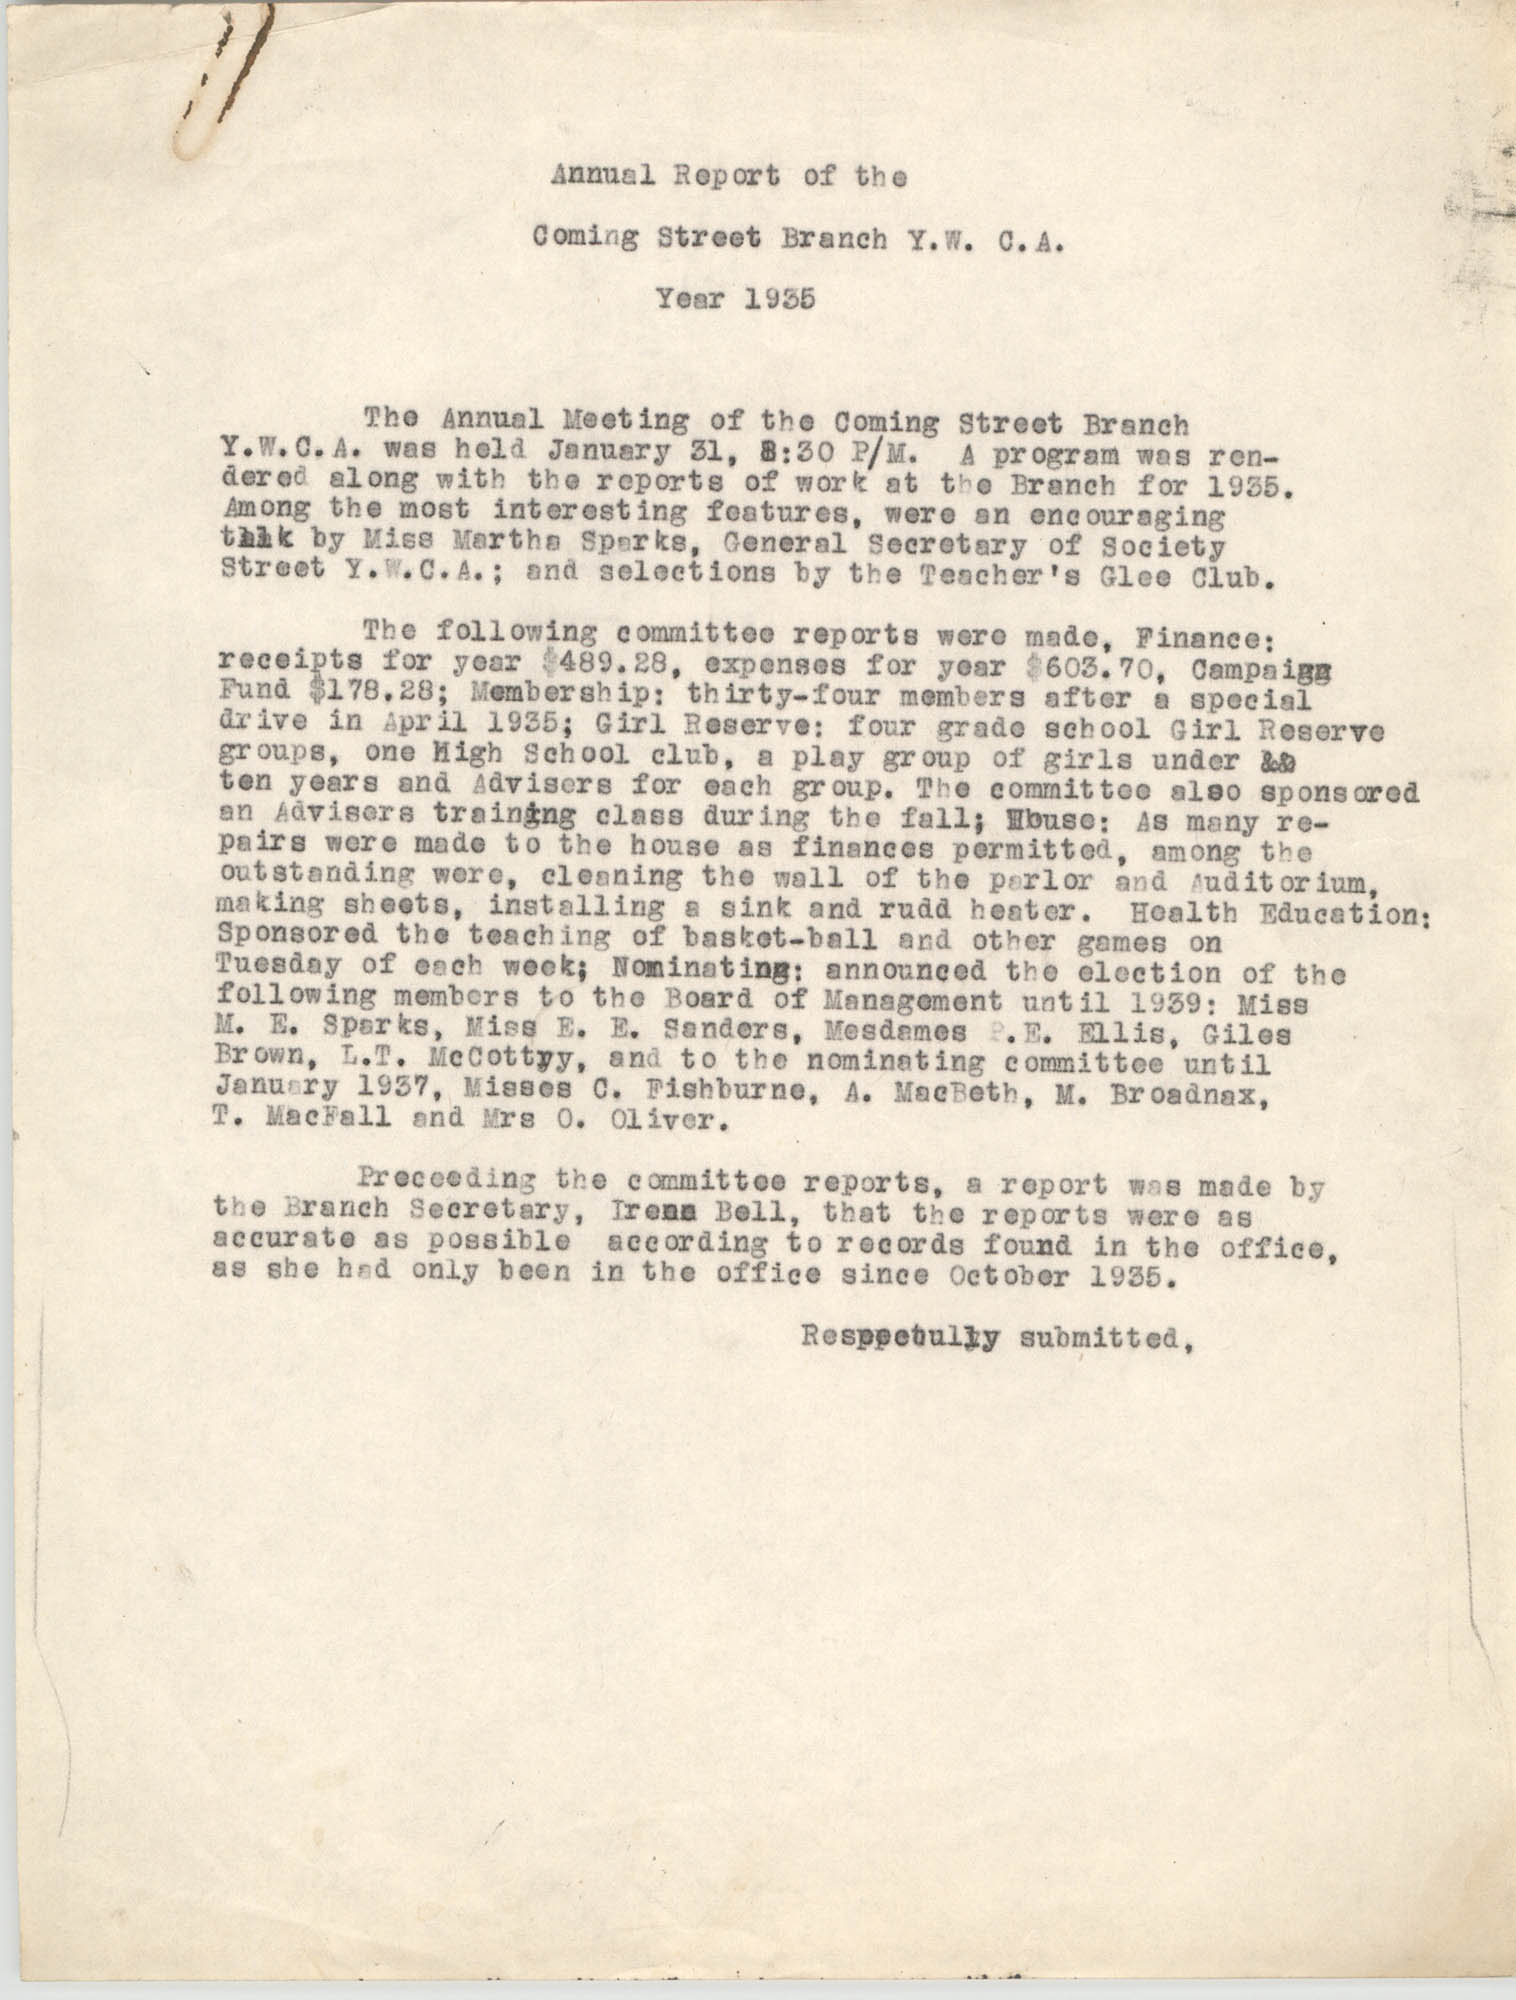 Coming Street Y.W.C.A. Annual Report for 1935